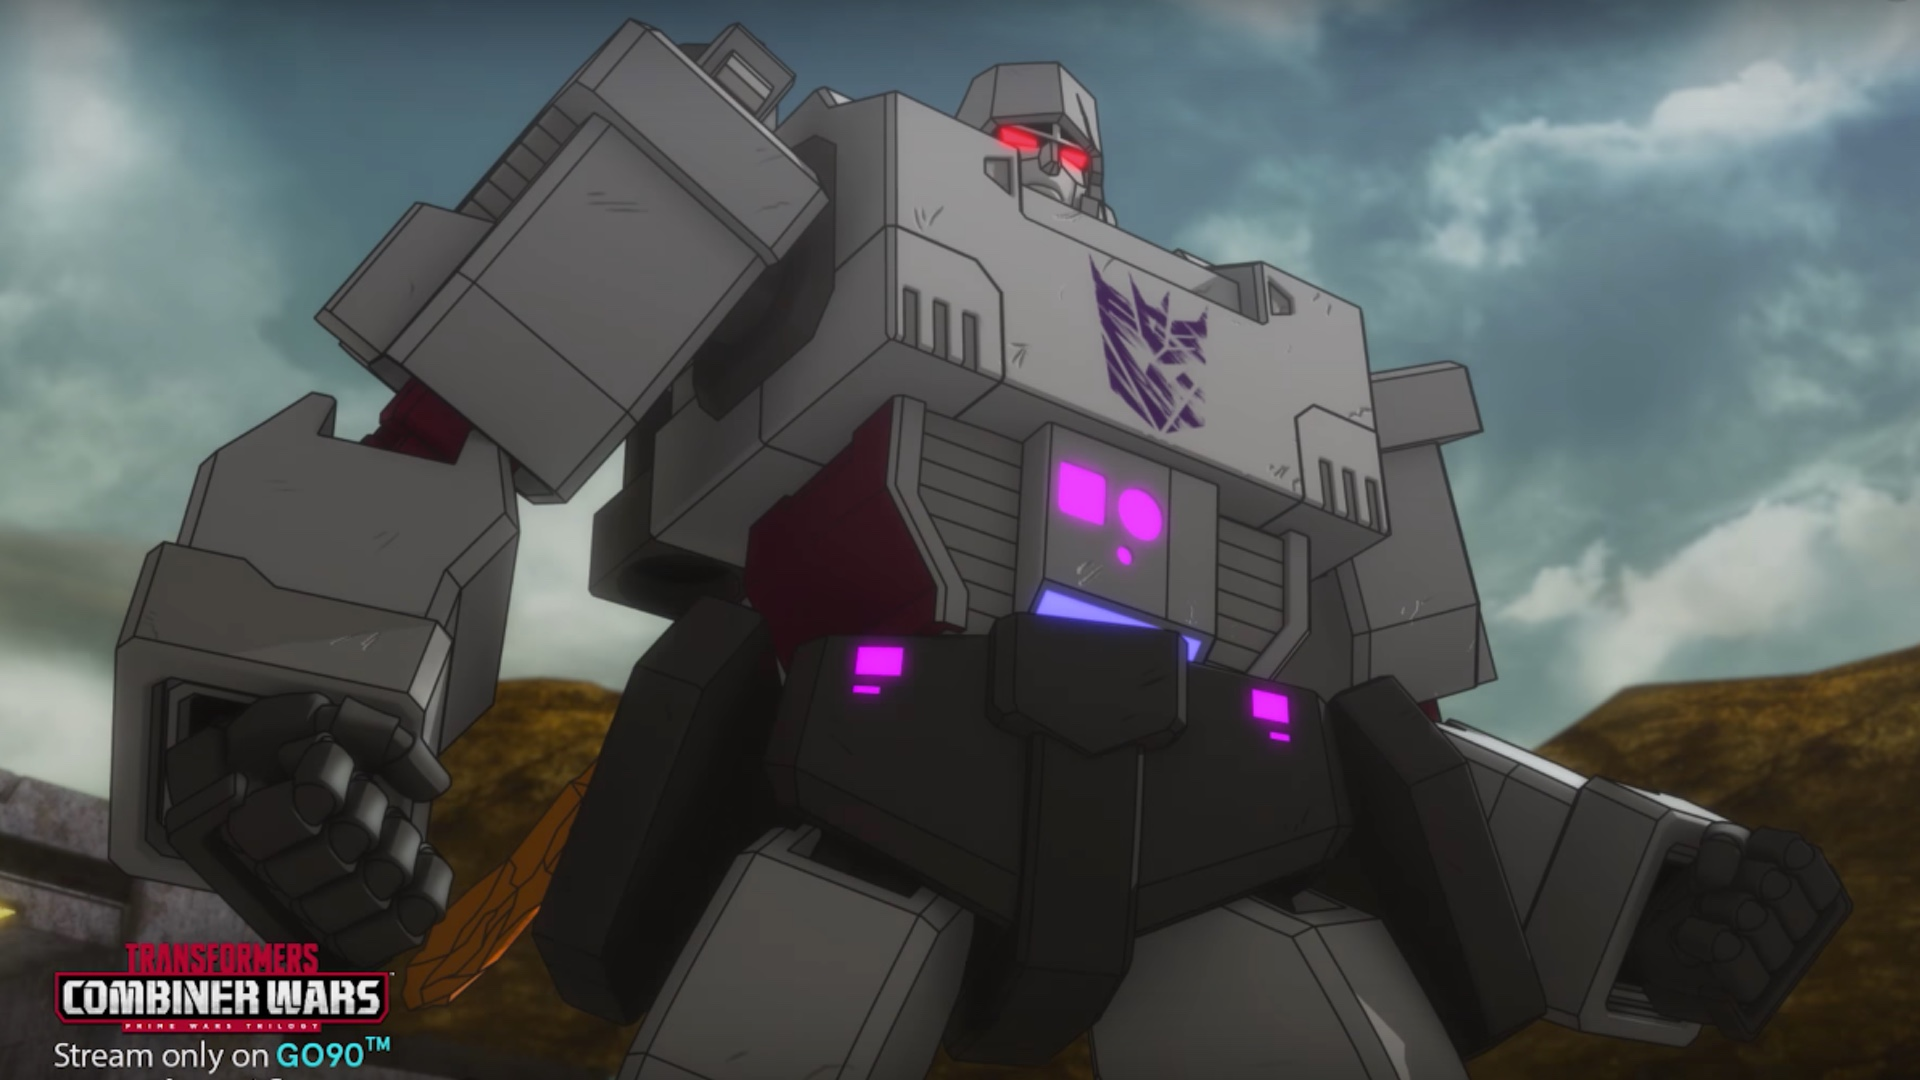 kickass new trailer for the transformers combiner wars animated